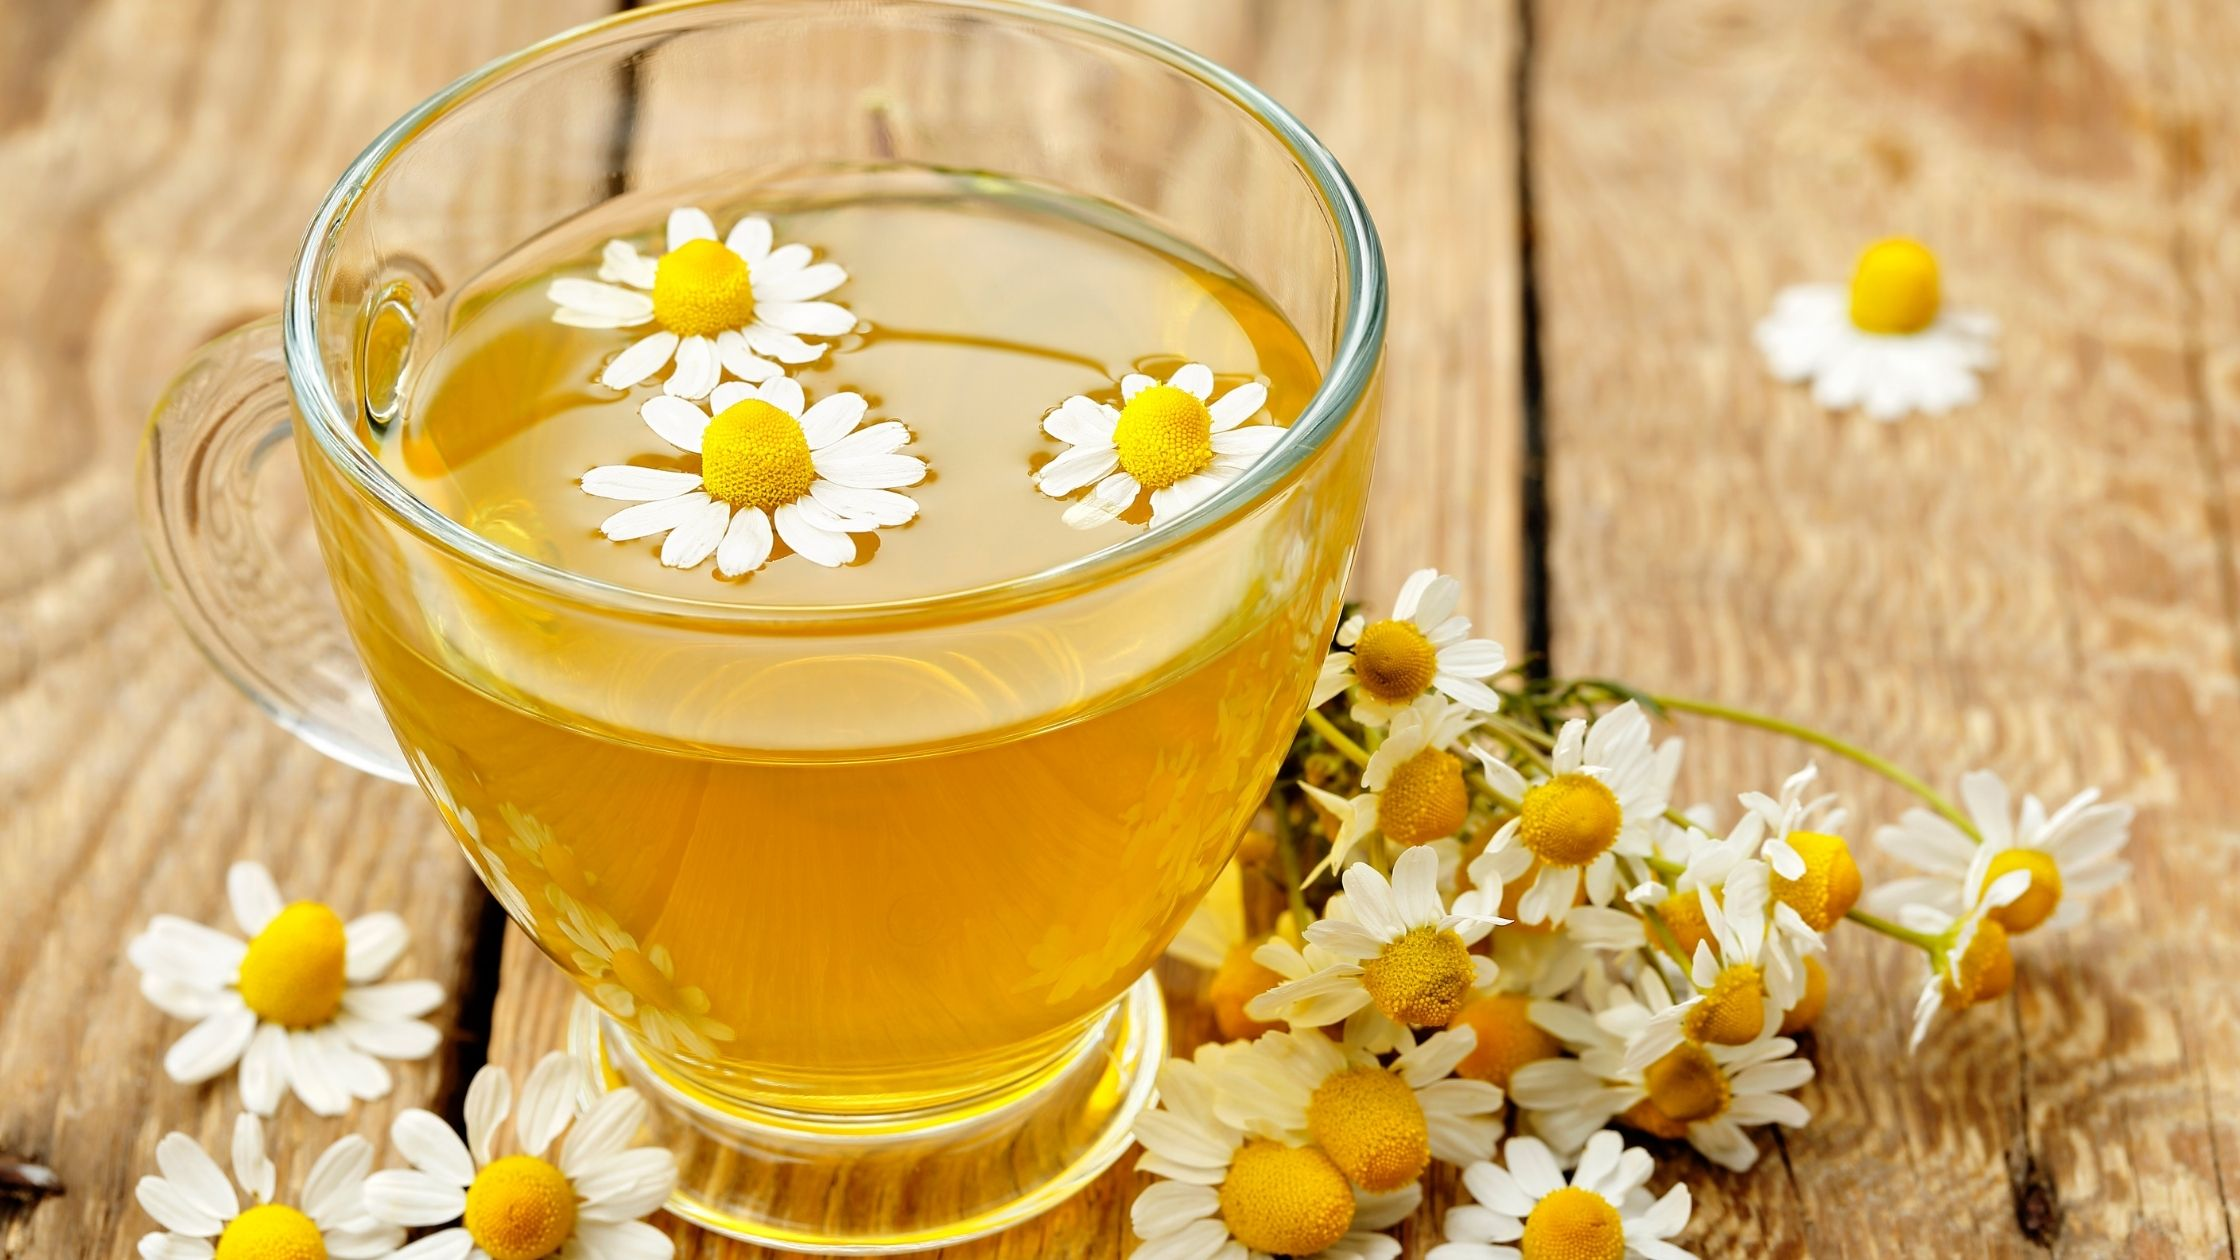 Chamomile Remedies to Reduce Vaginal Dryness